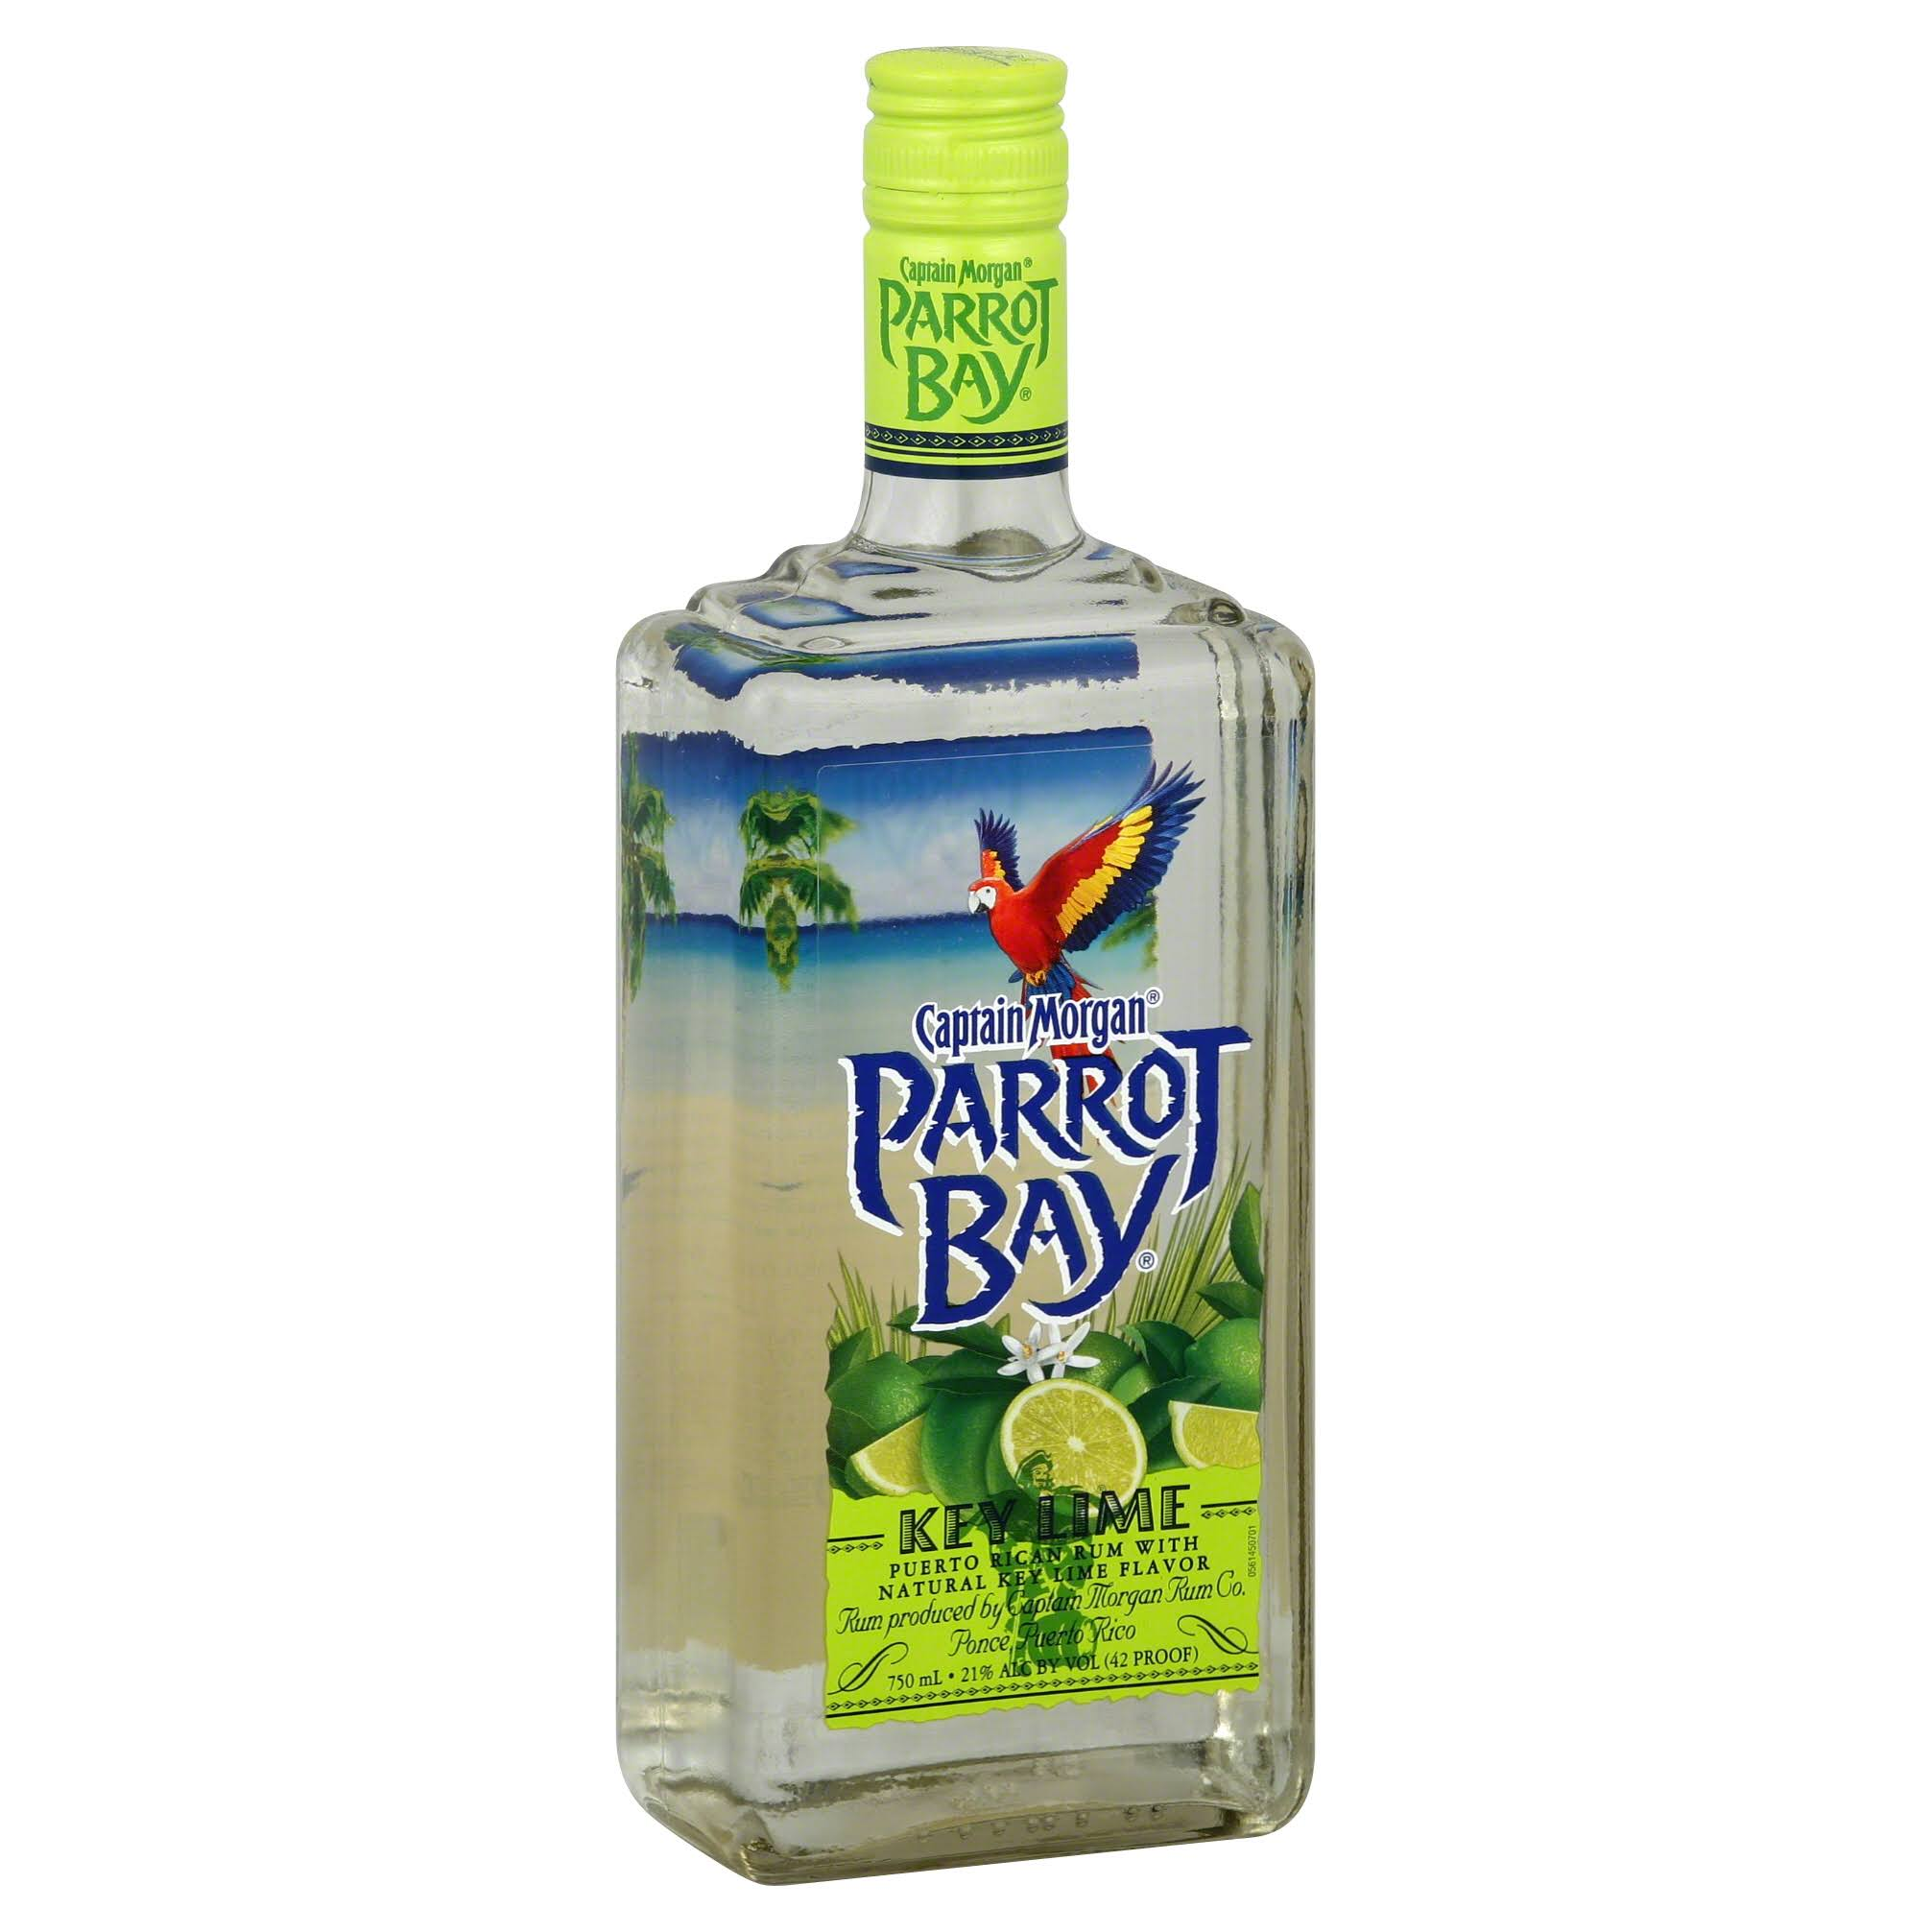 Captain Morgan's Parrot Bay Rum - Key Lime, 750ml